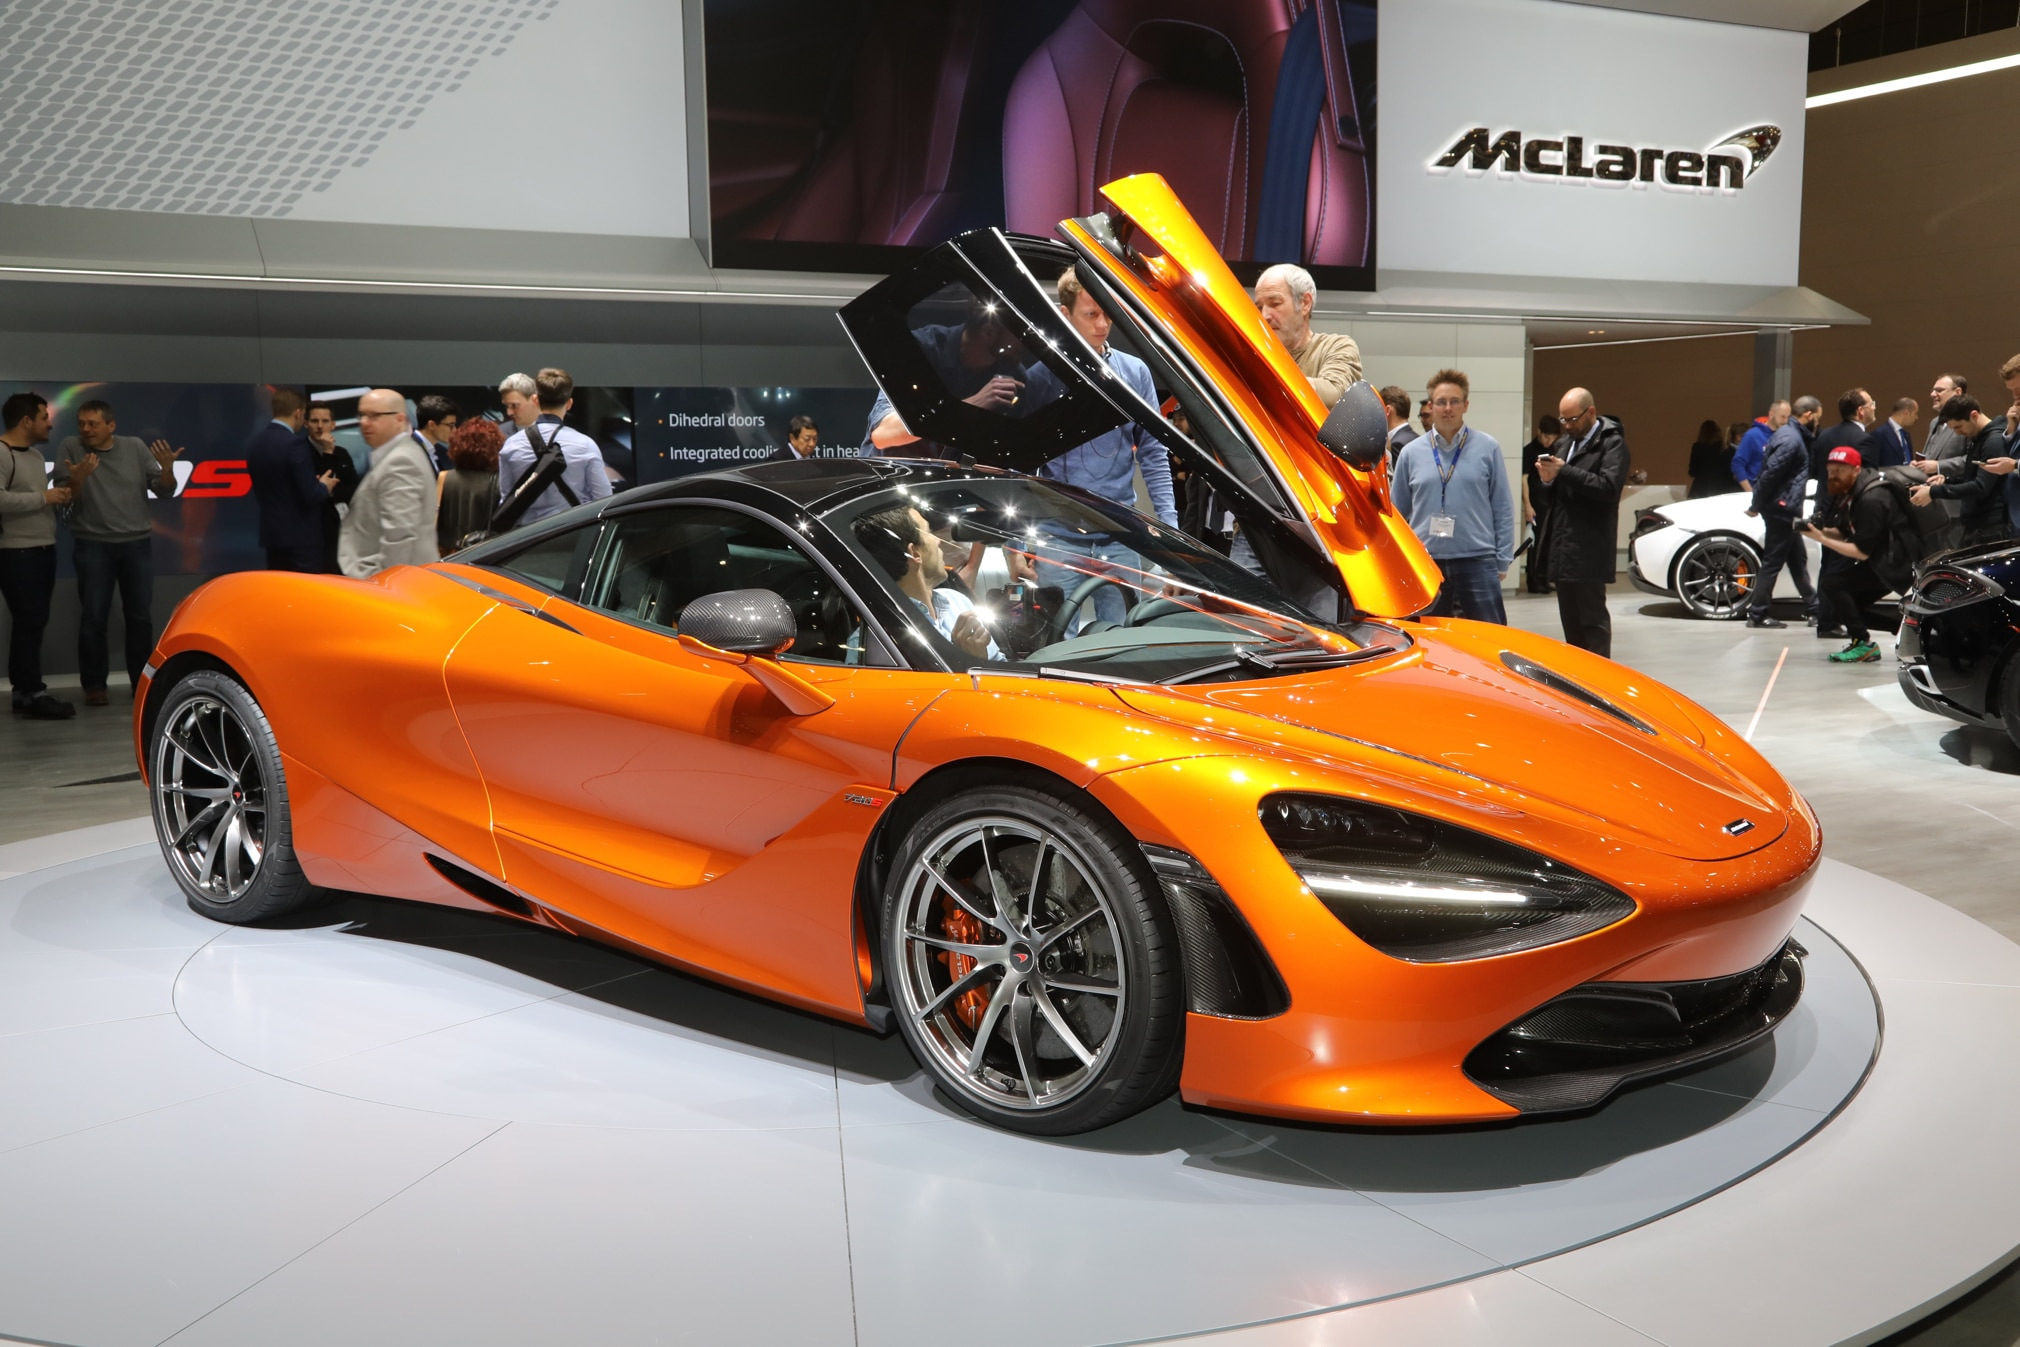 2018 McLaren 720S Front Three Quarter 02 1